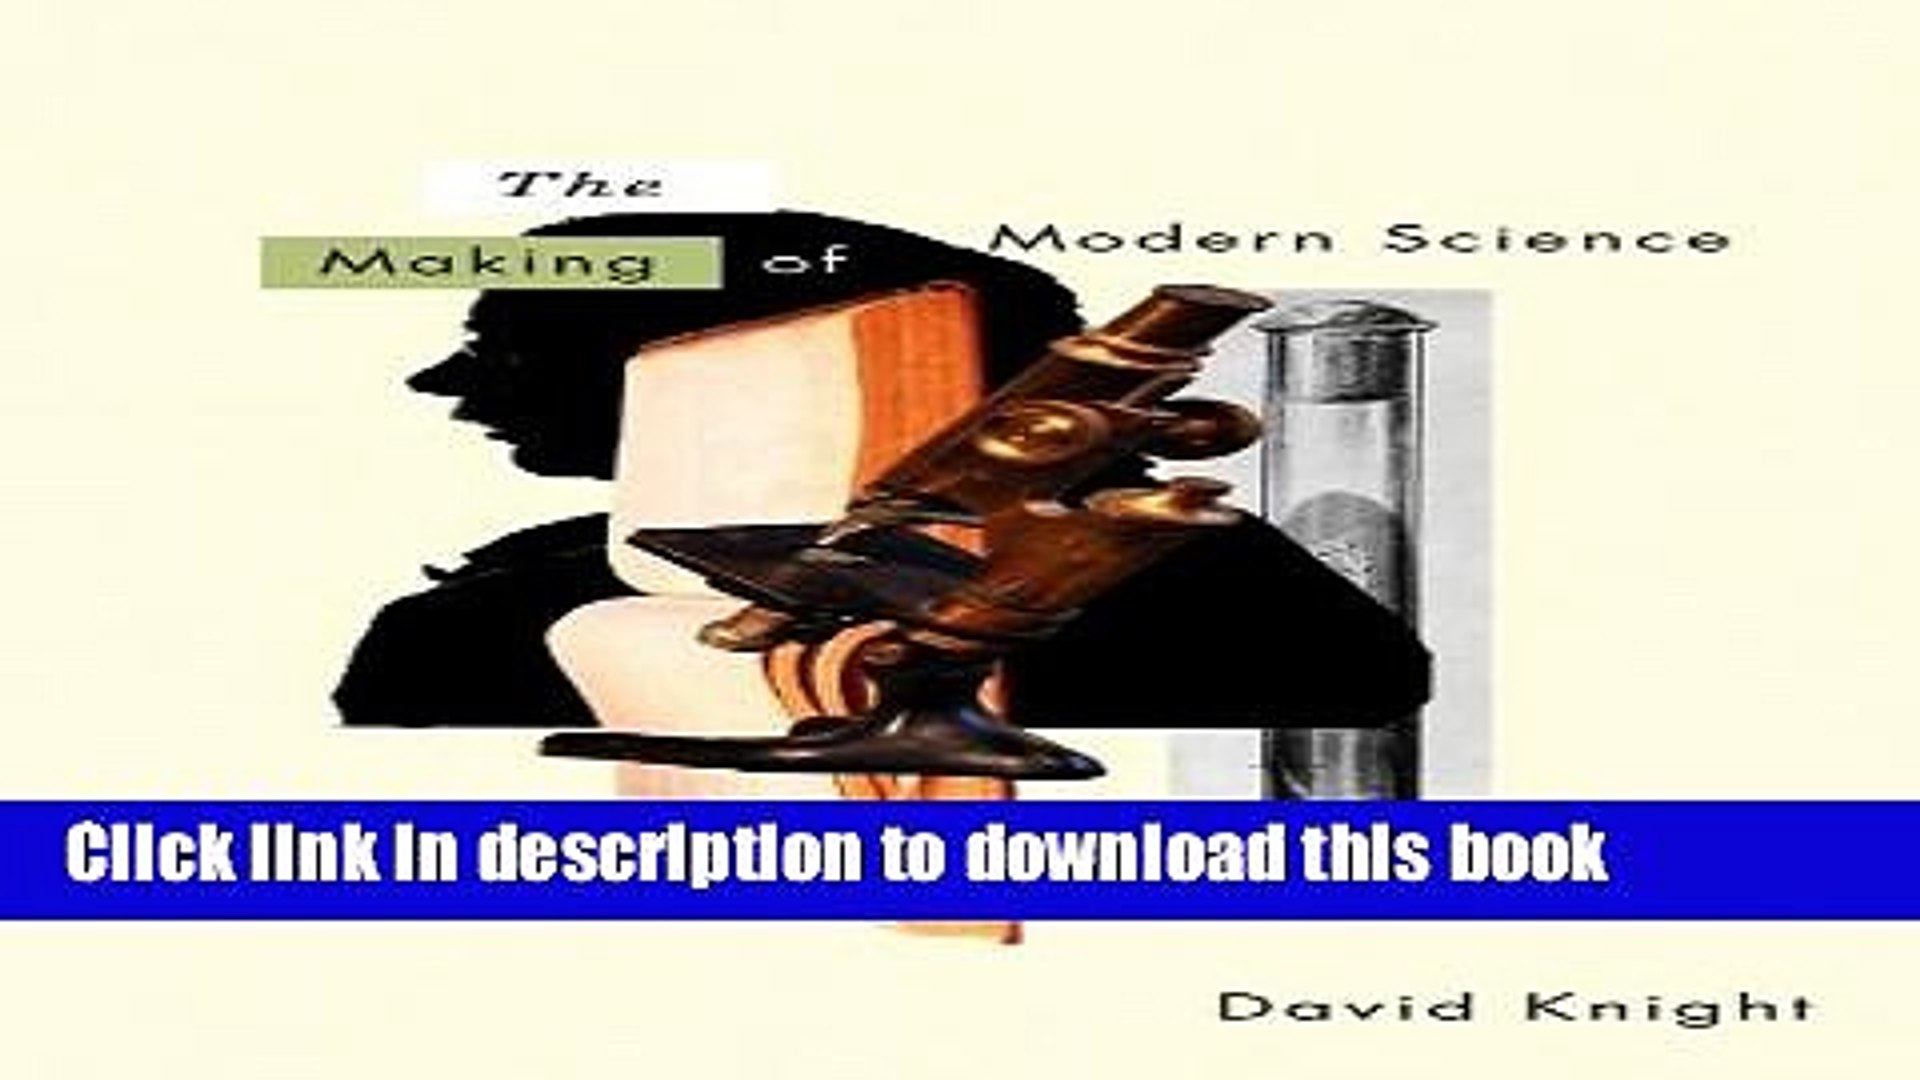 [Read PDF] The Making of Modern Science: Science, Technology, Medicine and Modernity: 1789 - 1914